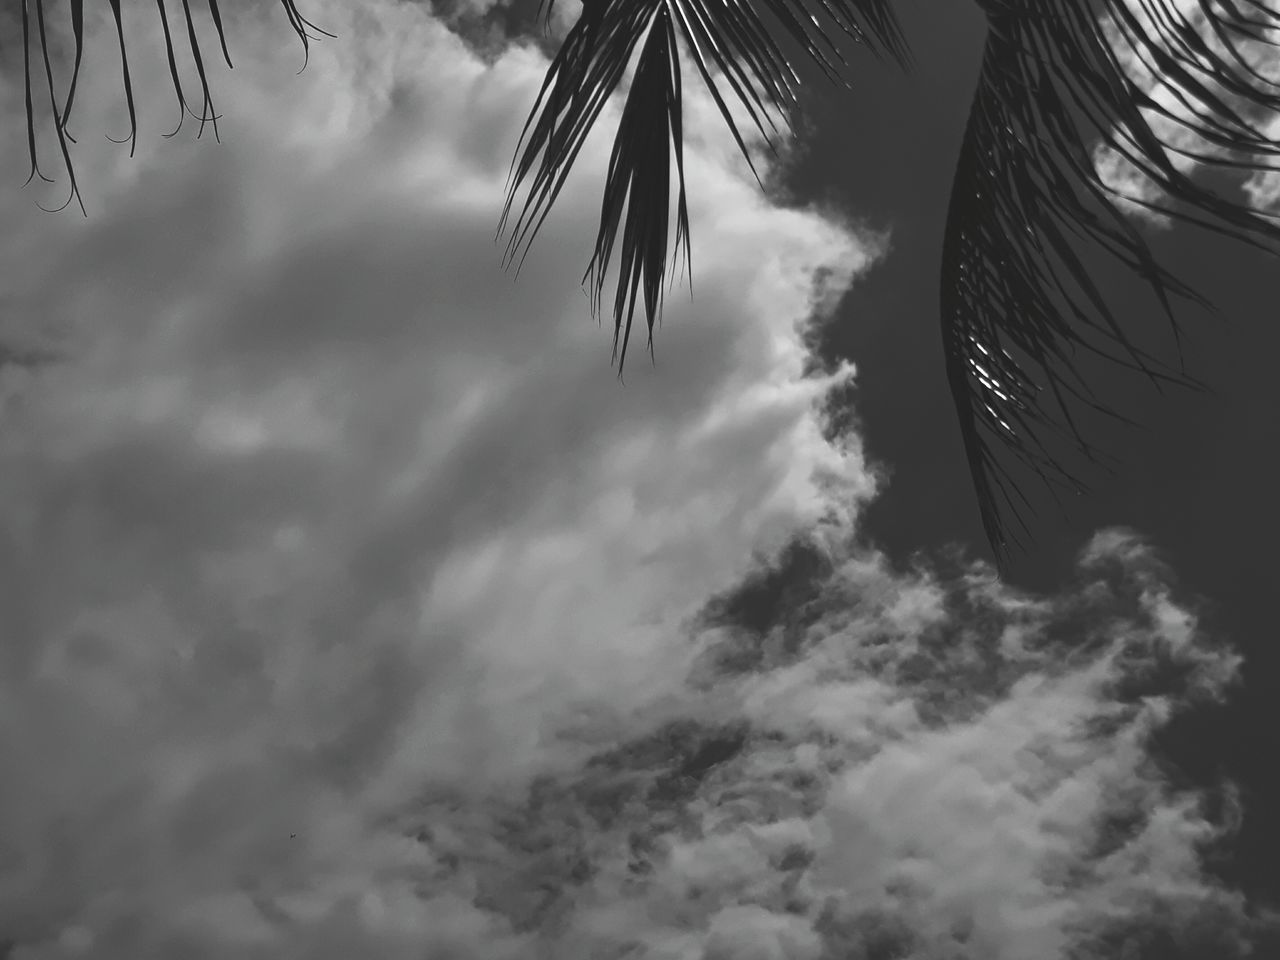 cloud - sky, low angle view, sky, nature, outdoors, no people, palm tree, beauty in nature, day, tree